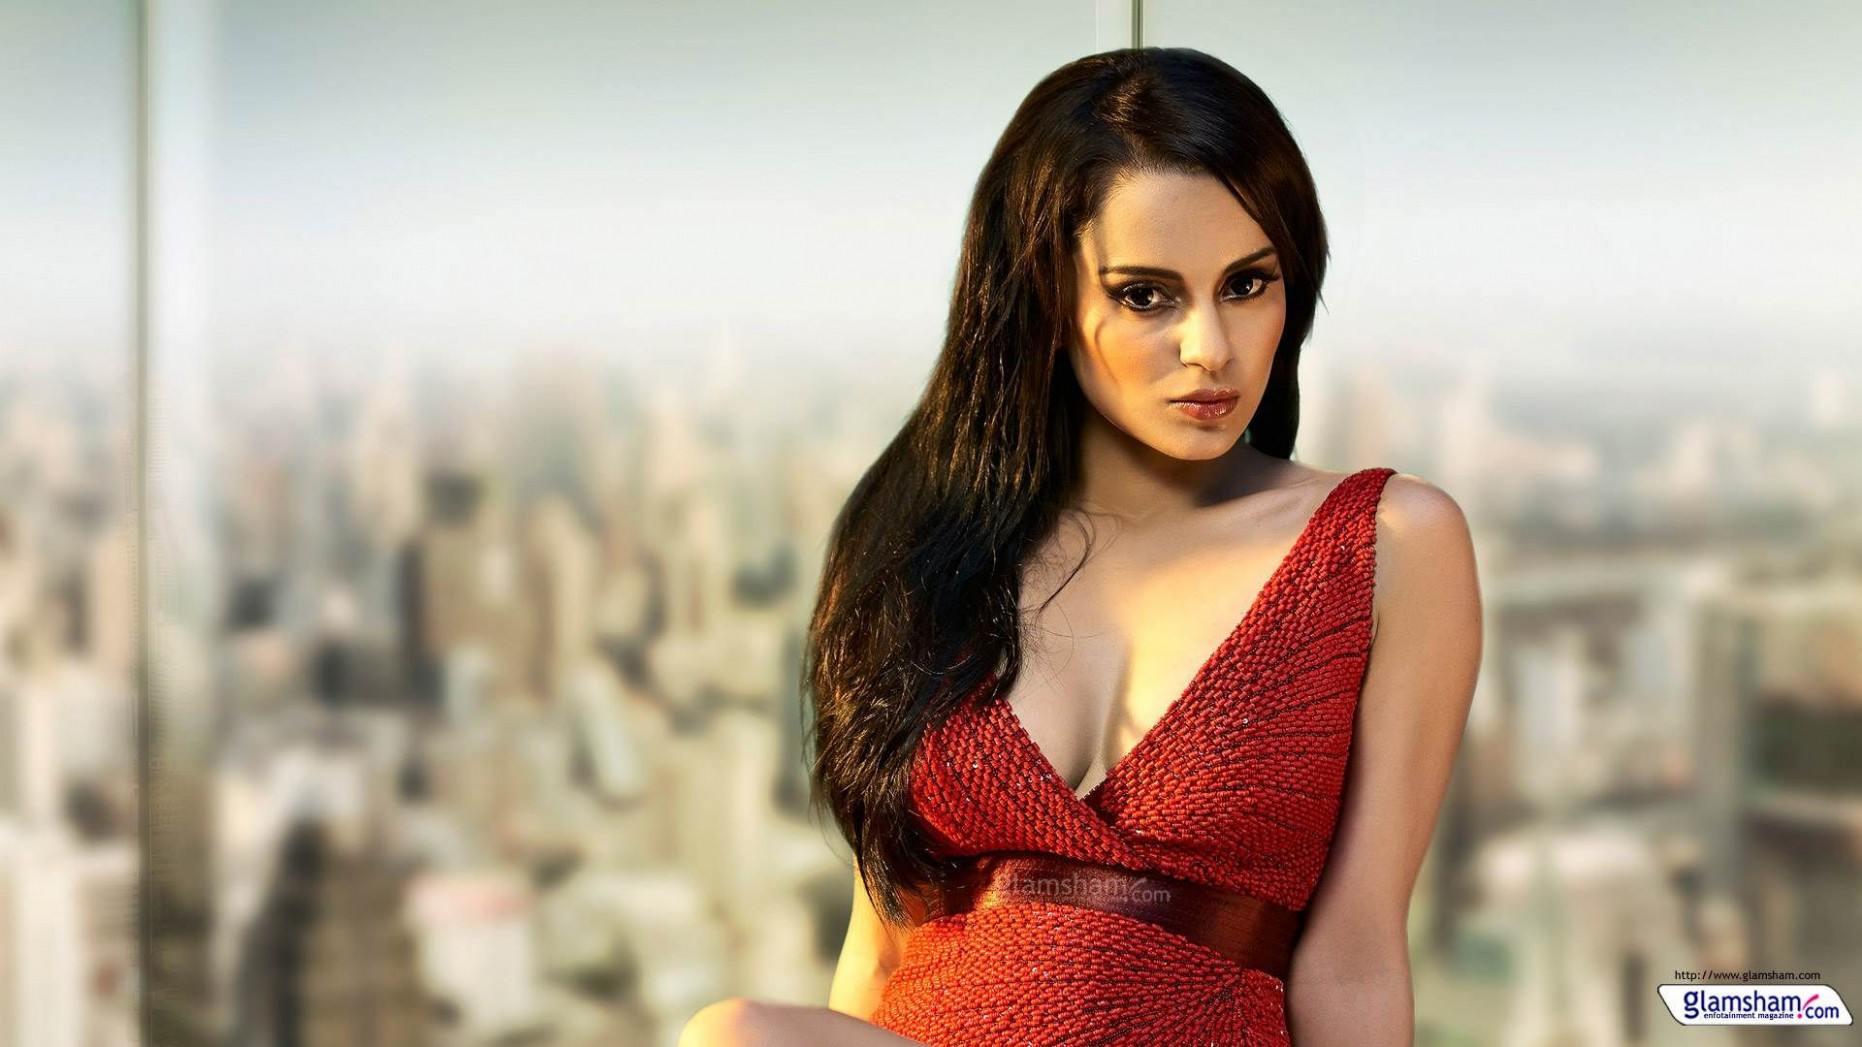 Bollywood Actress HD wallpapers Free Download 1024